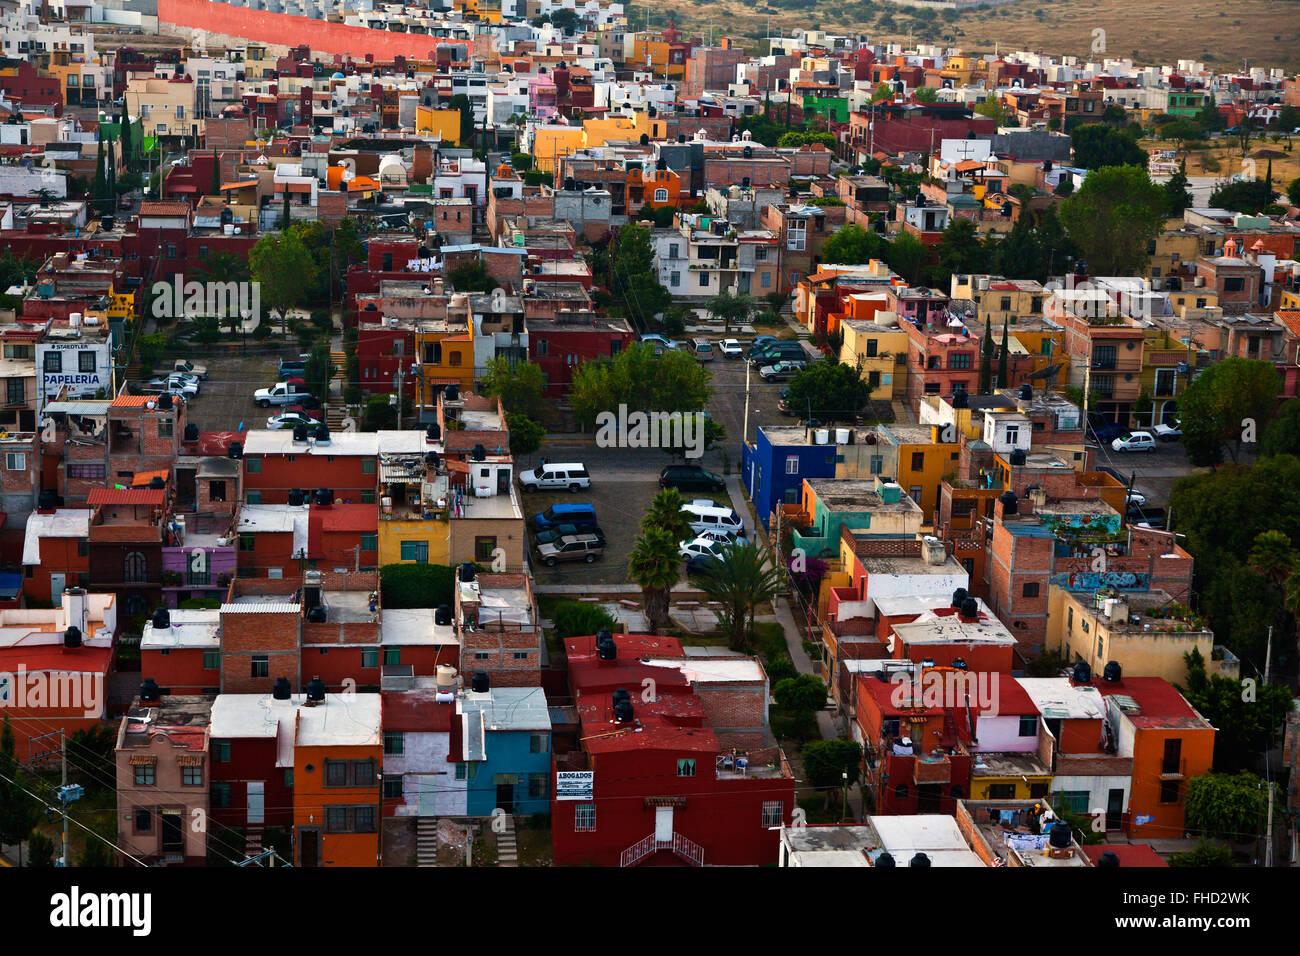 ARIAL VIEW as seen from a BALLOON RIDE offered by Coyote Adventures -  SAN MIGUEL DE ALLENDE, MEXICO - Stock Image